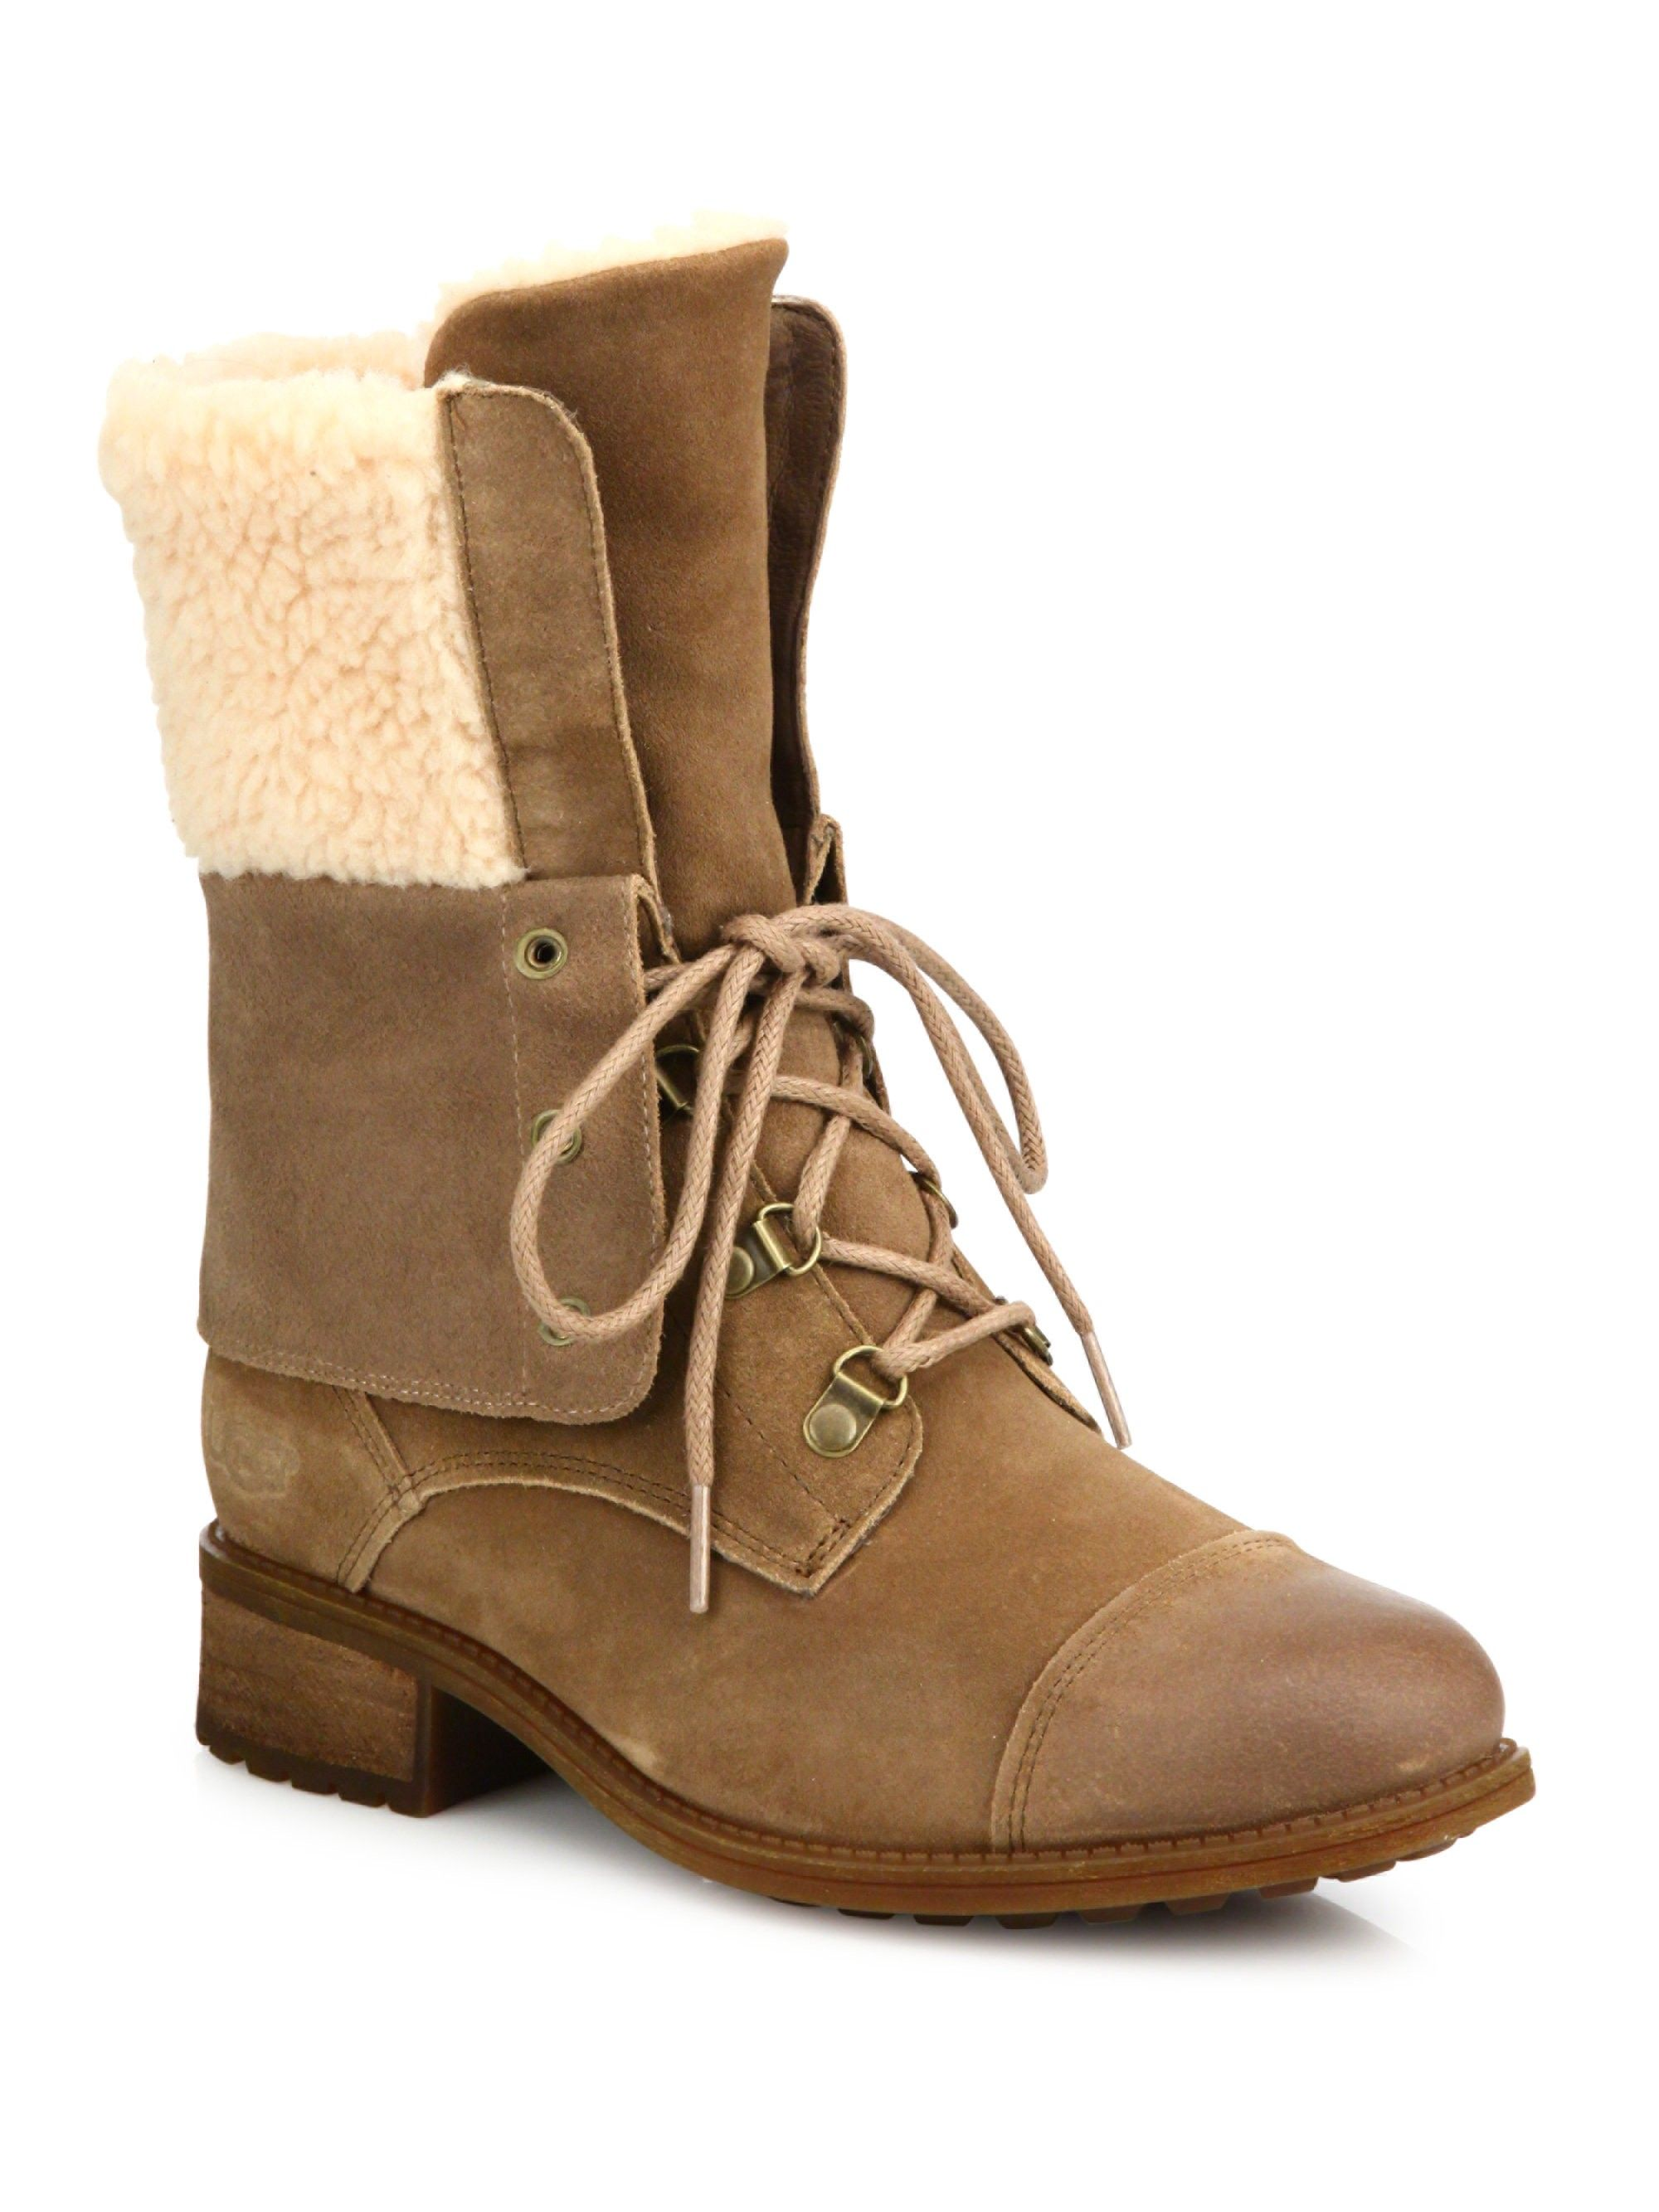 3da88973e62 Gradin Suede Lace-Up Boots by Ugg Australia | Products | Boots, Lace ...